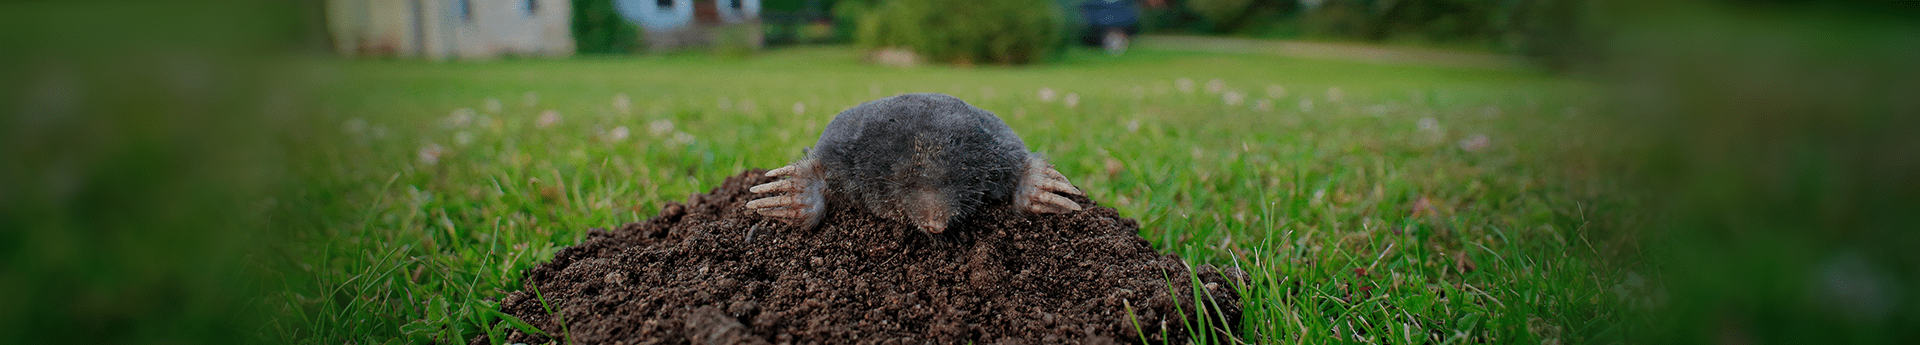 mole looking out of its hole